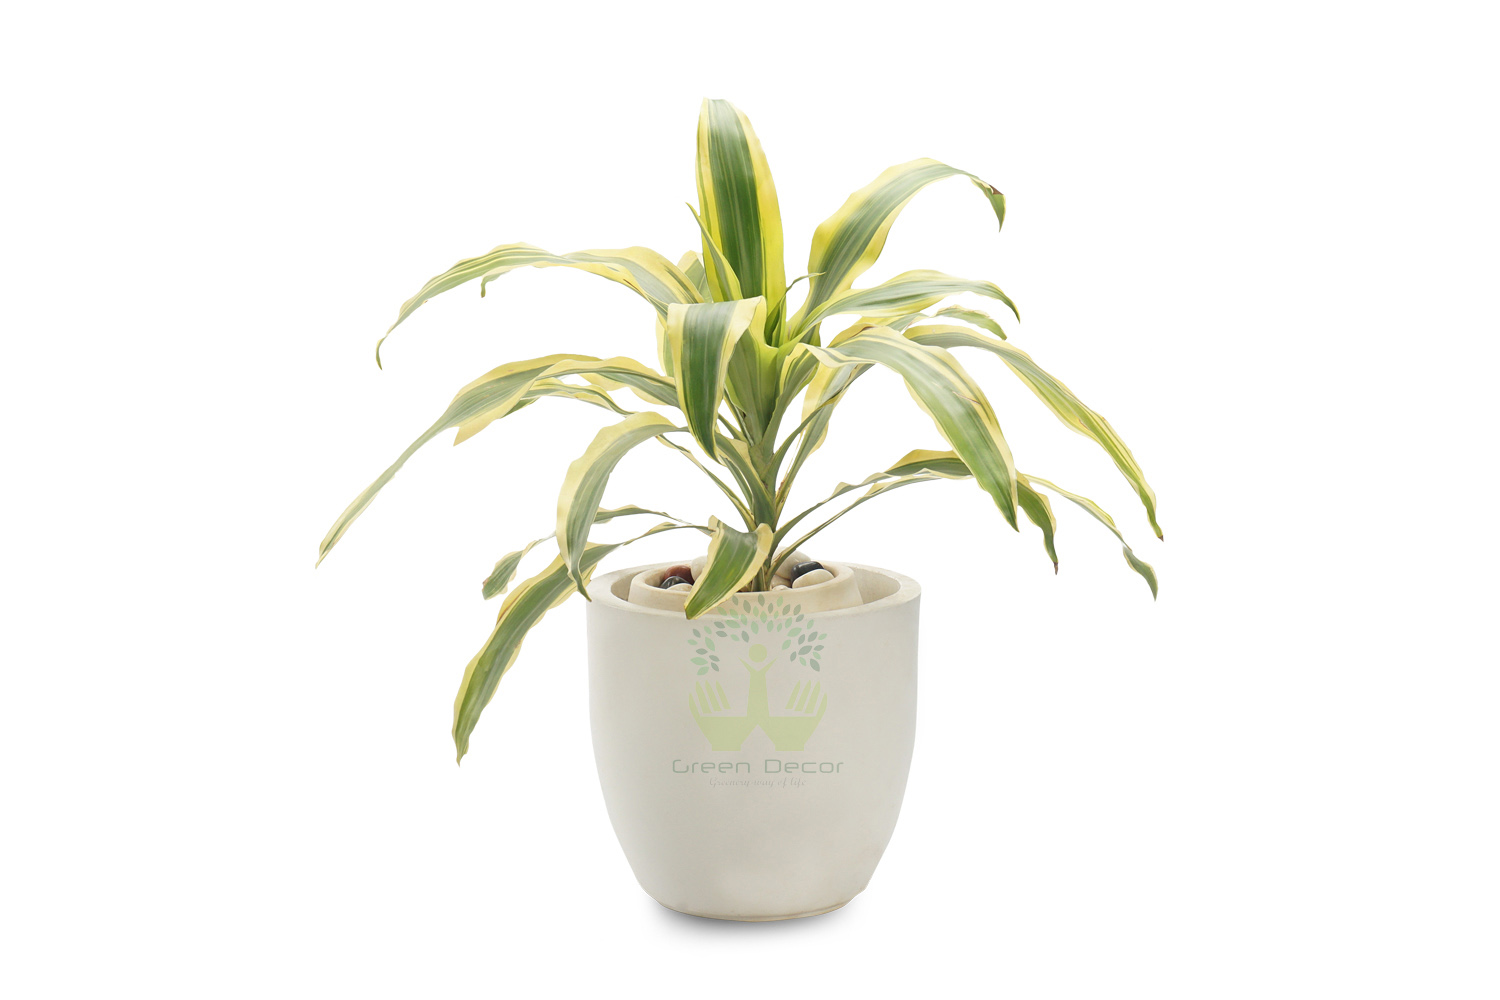 Buy Dracaena victoria Plants , White Pots and seeds in Delhi NCR by the best online nursery shop Greendecor.